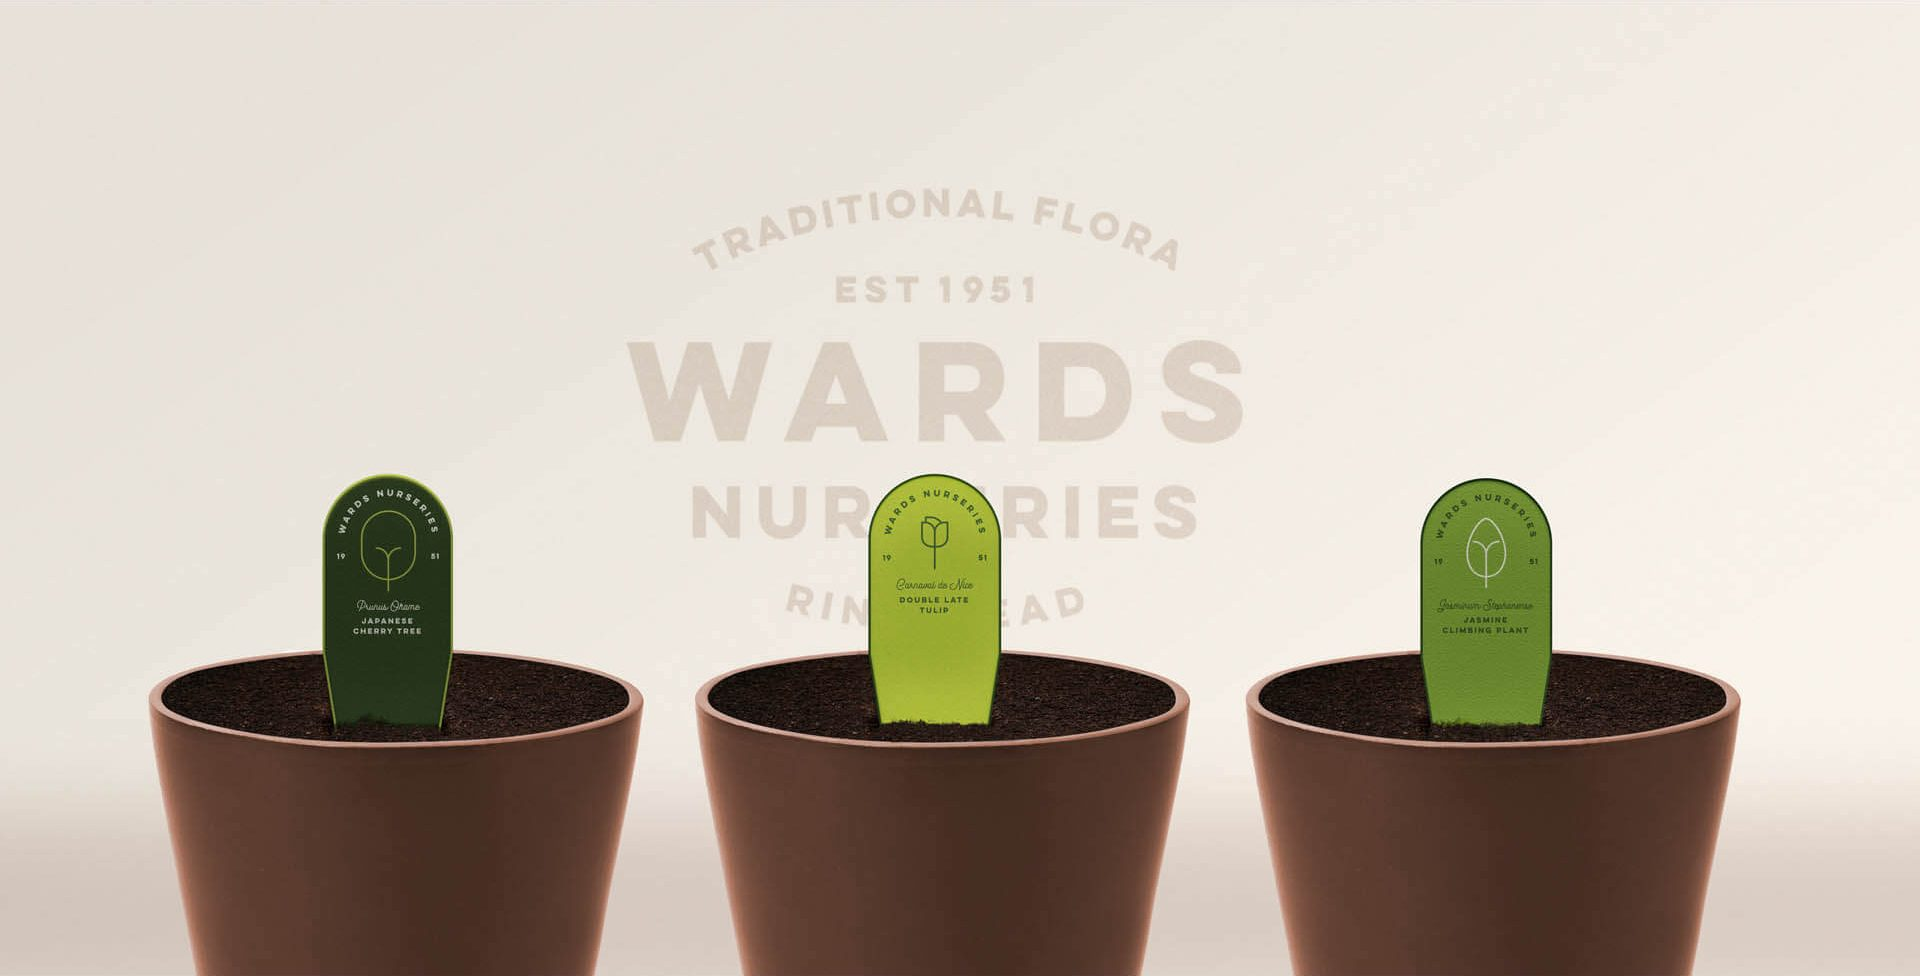 Wards Nurseries